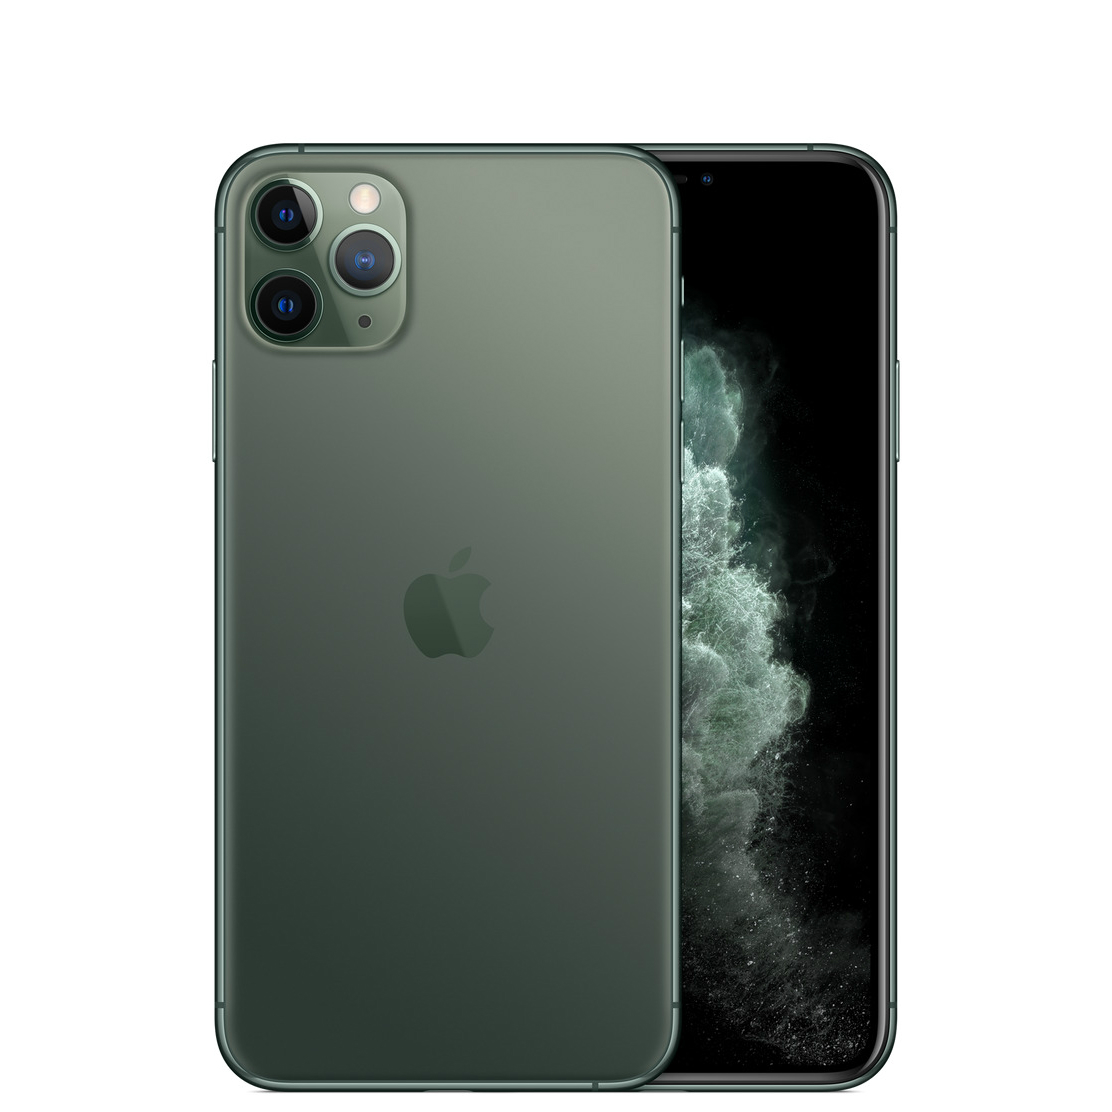 Image of Apple iPhone 11 Pro 256GB A2217 Dual Sim with Tempered Glass Screen Protector - Midnight Green